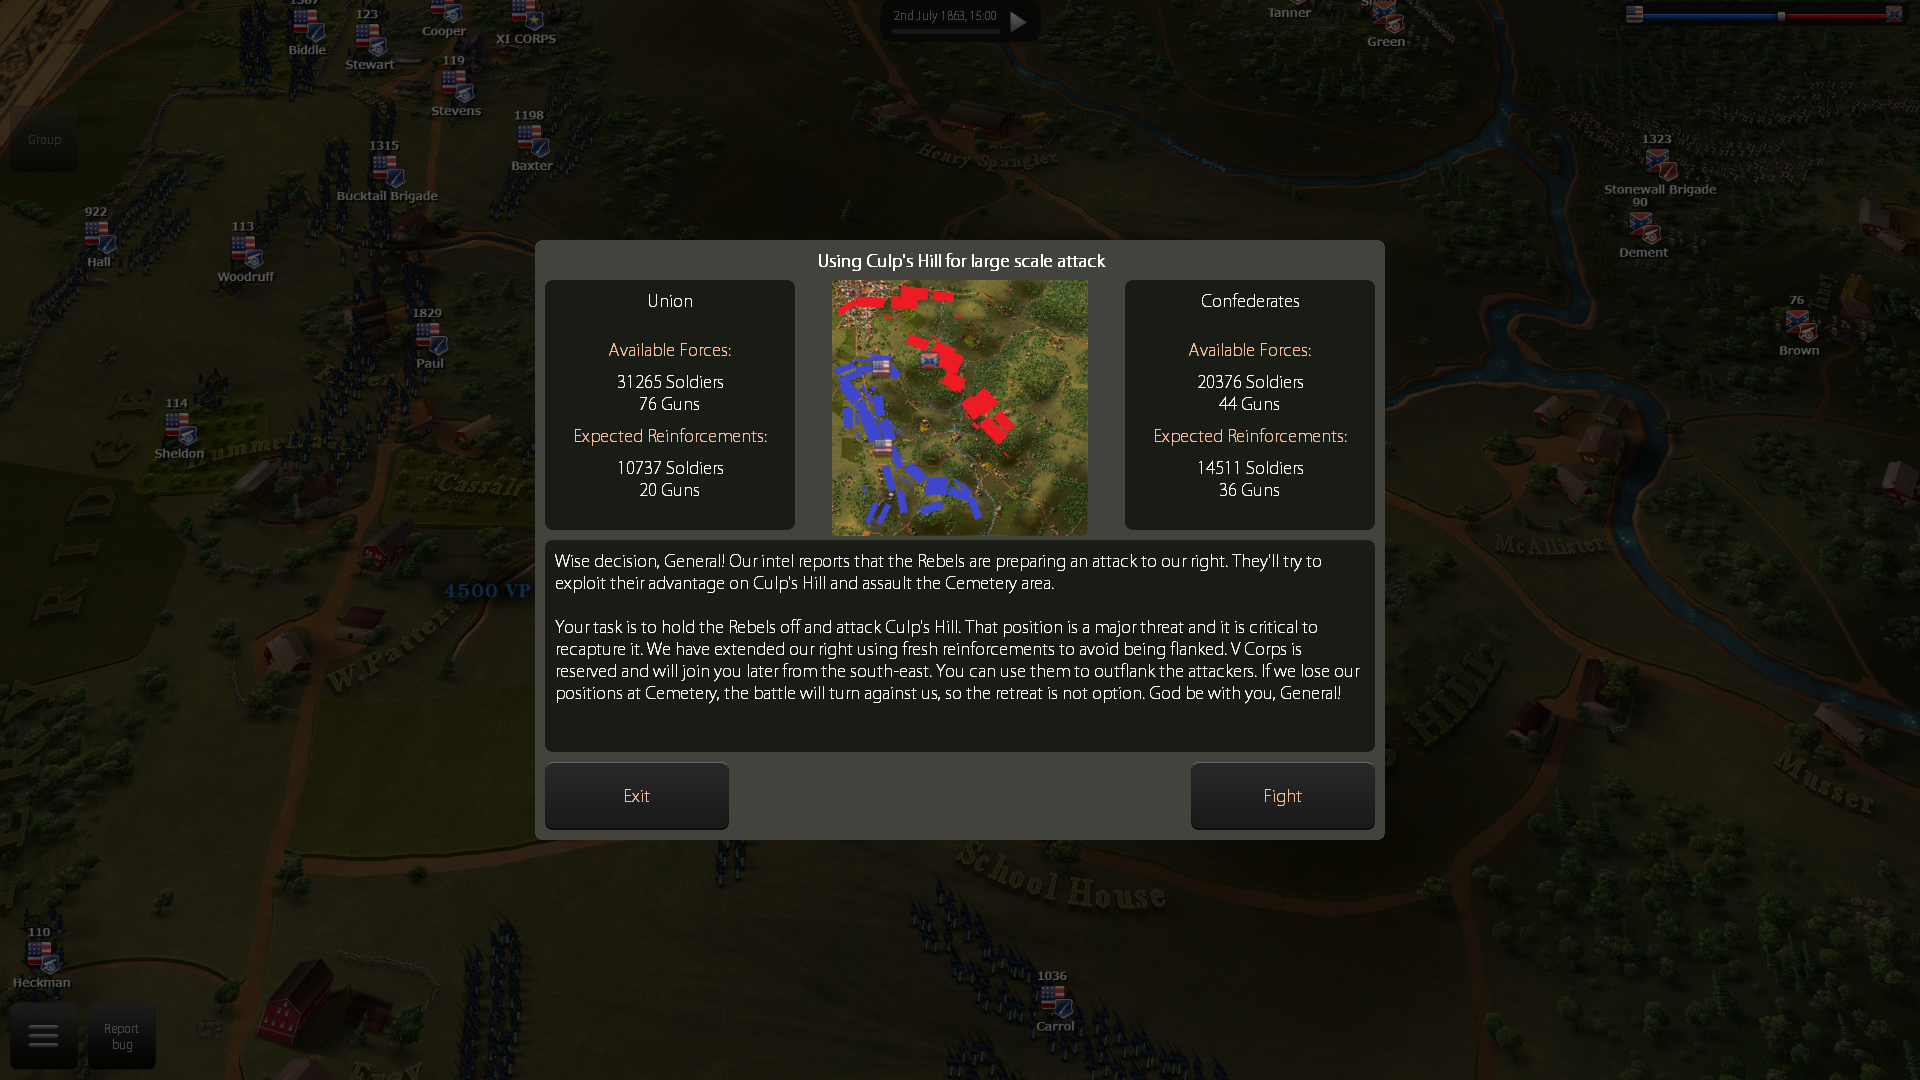 You can now see how the armies are deployed before each battle (Work in progress).